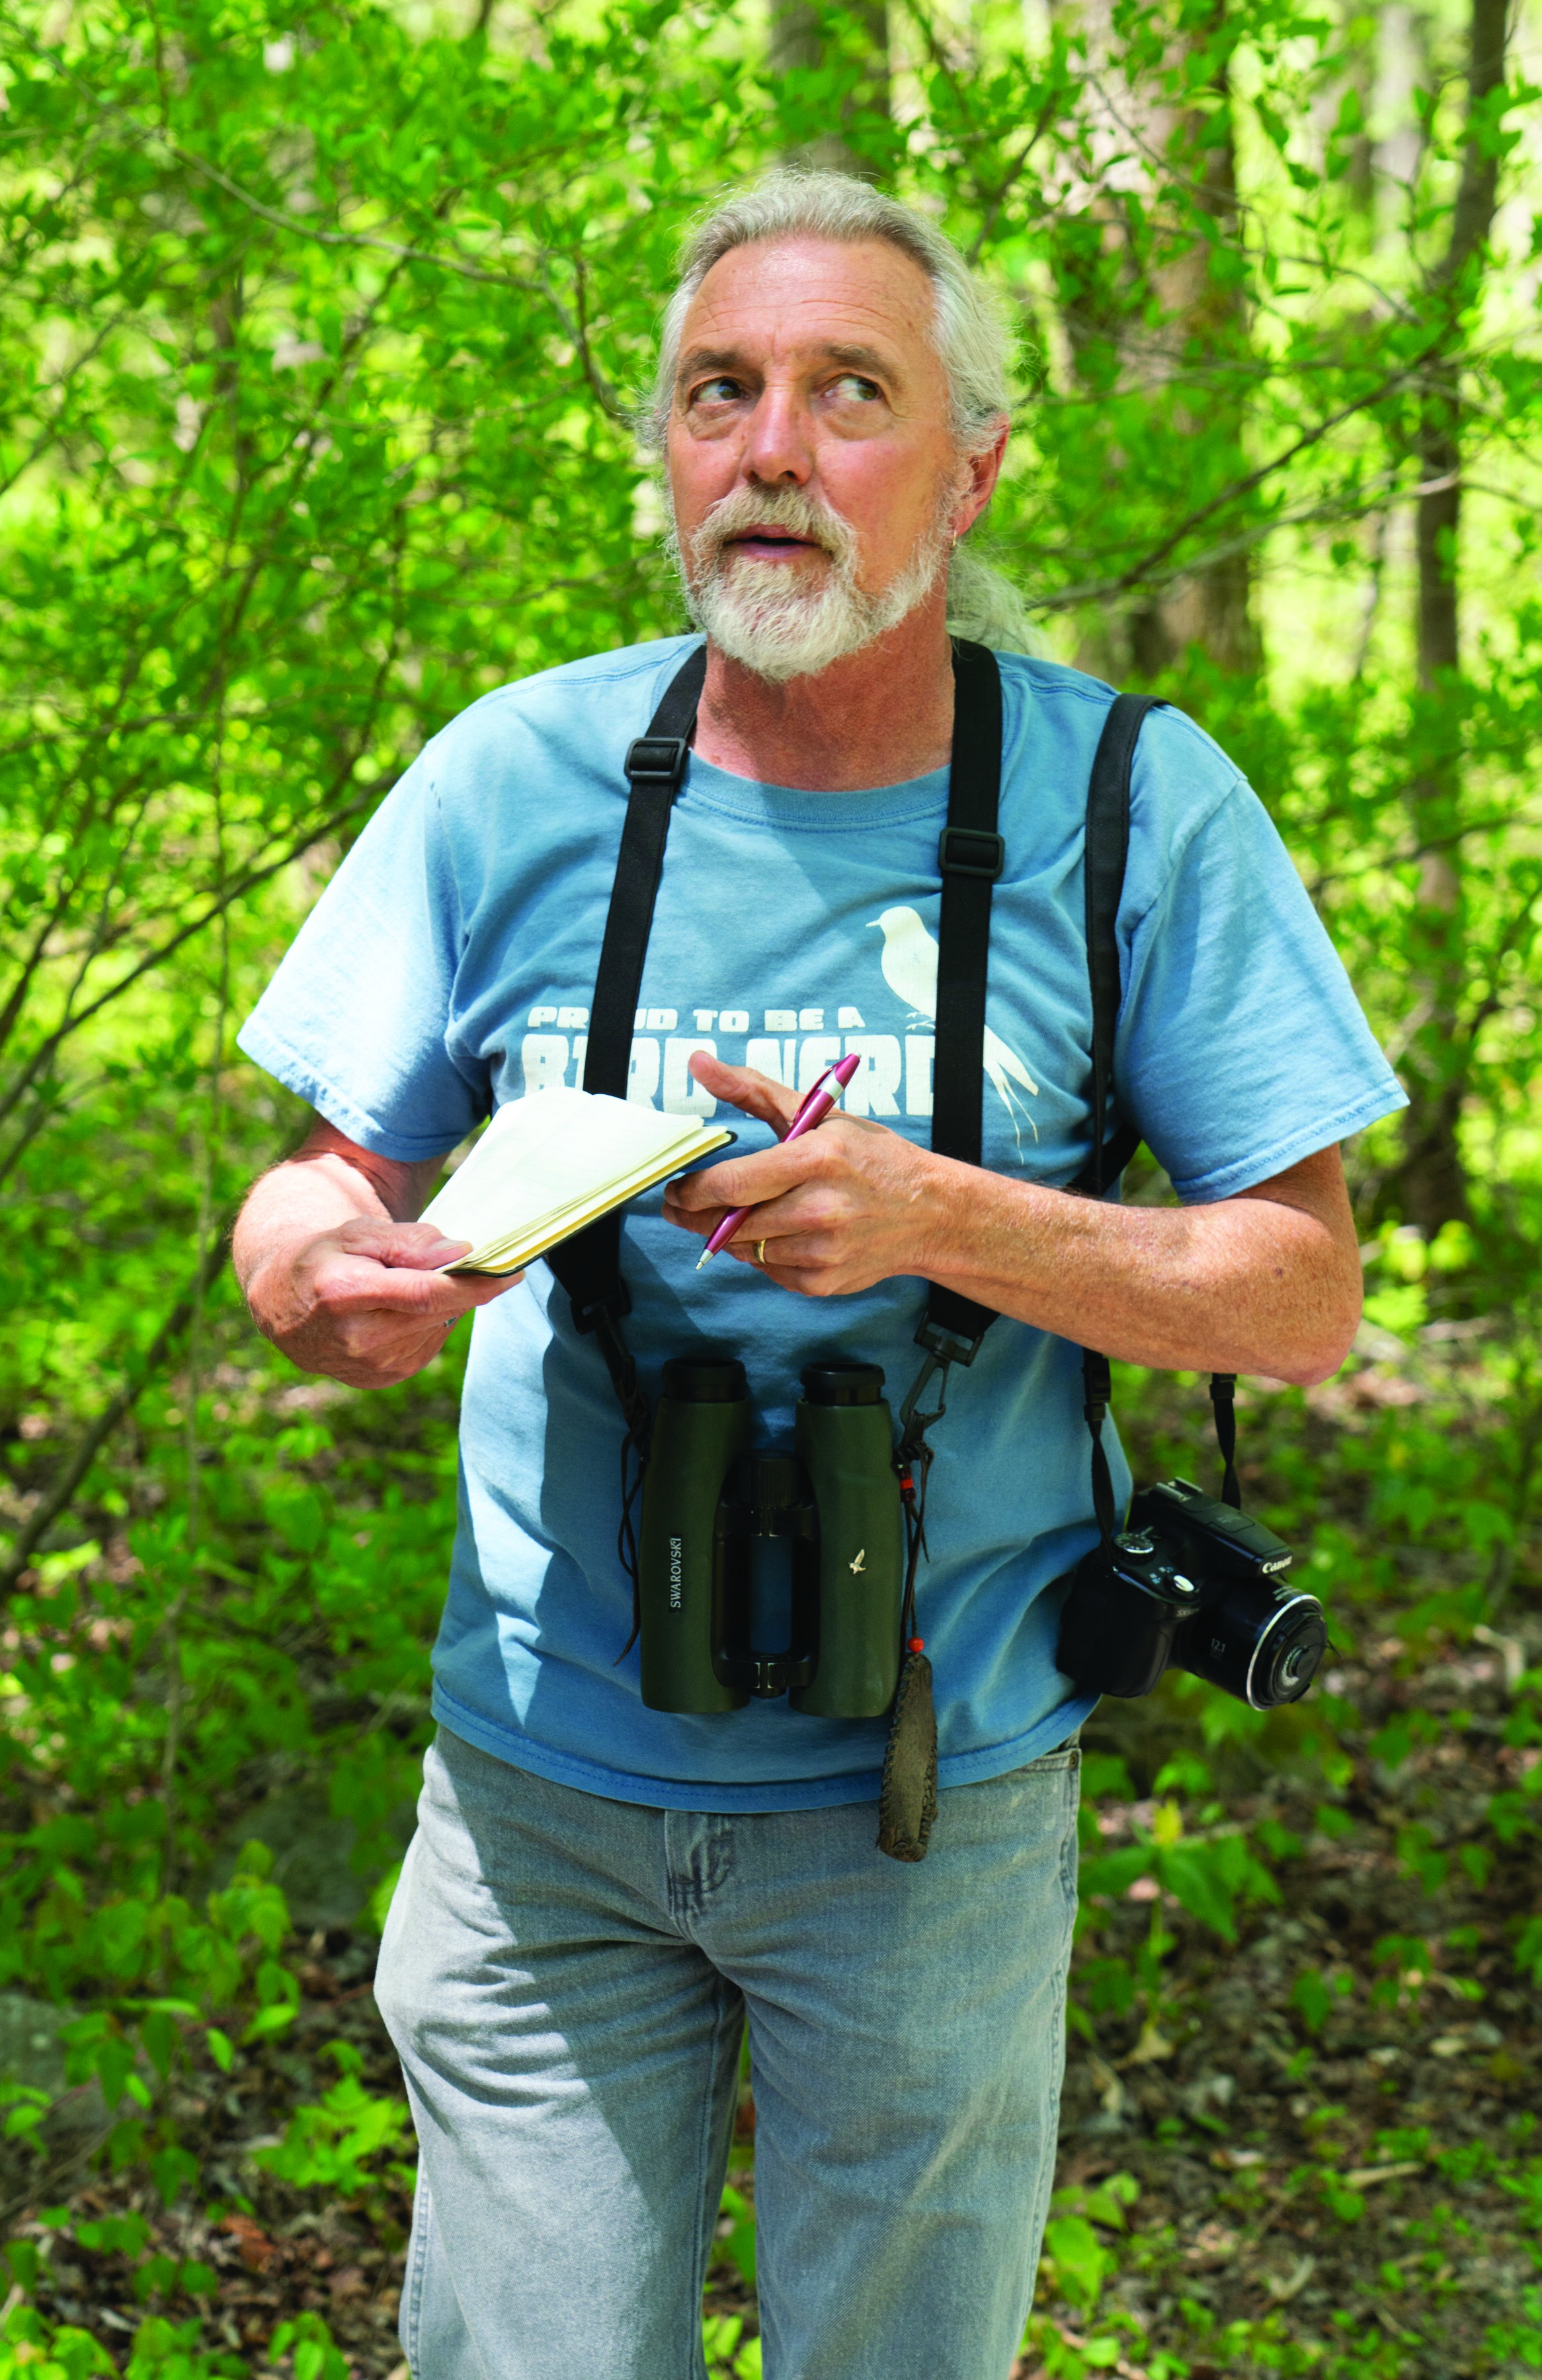 Keith Watson, a professional birding guide and former biologist with the National Park Service, pauses to listen for birdsong in Great Smoky Mountains National Park. Photo courtesy of Joye Ardyn Durham.